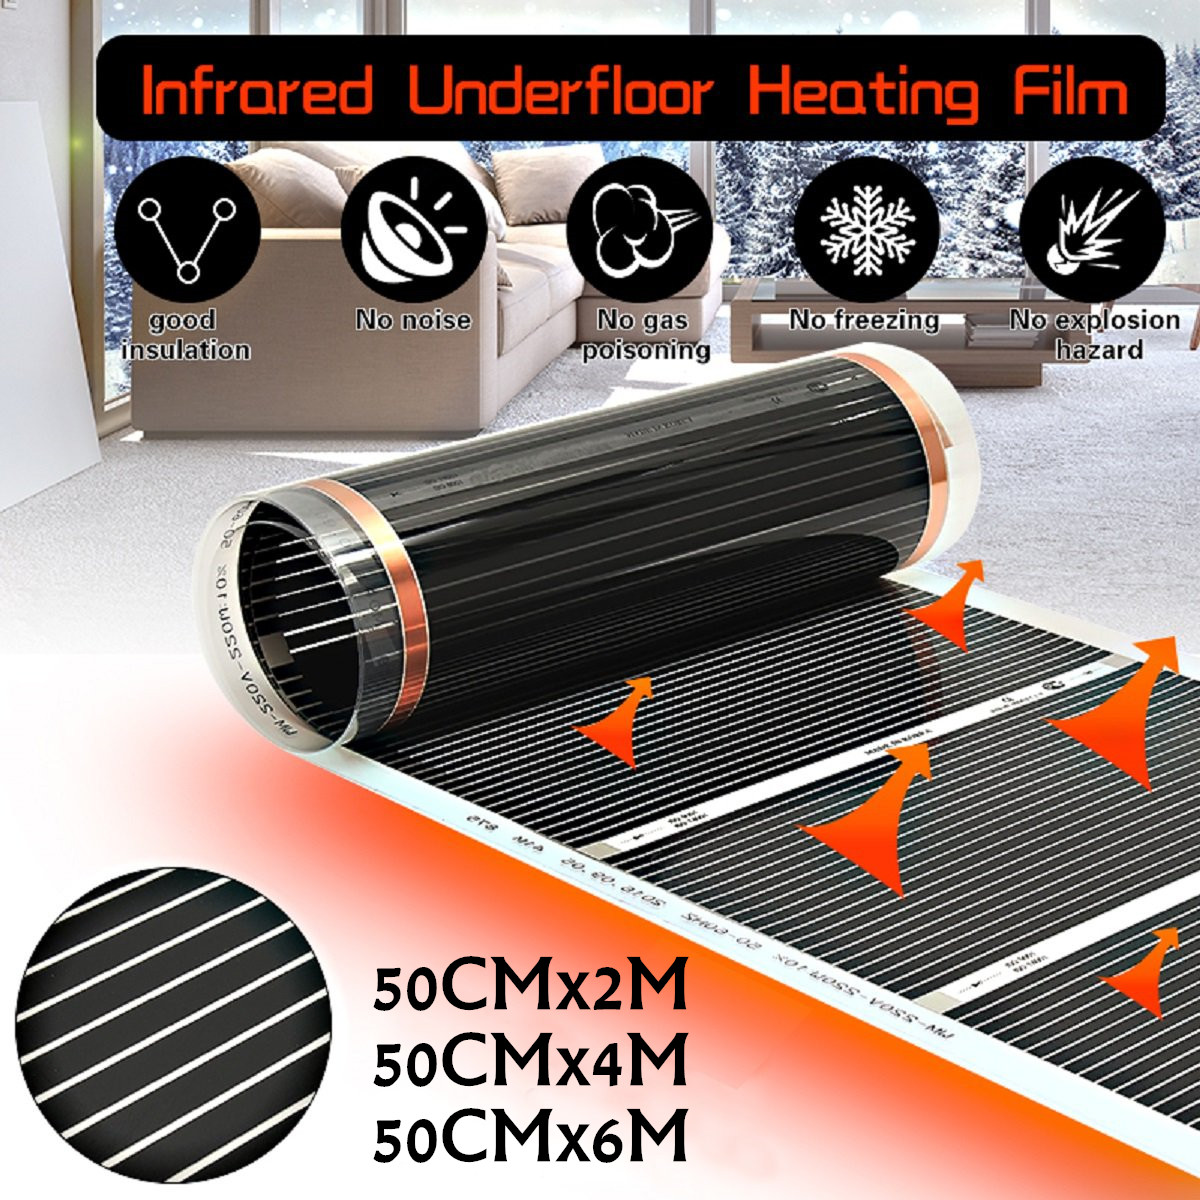 2M~6M 50CM Far Infrared Electric Floor Heating Films Underfloor Electric Heating Warm Film Kit Under Laminate/Solid Floor